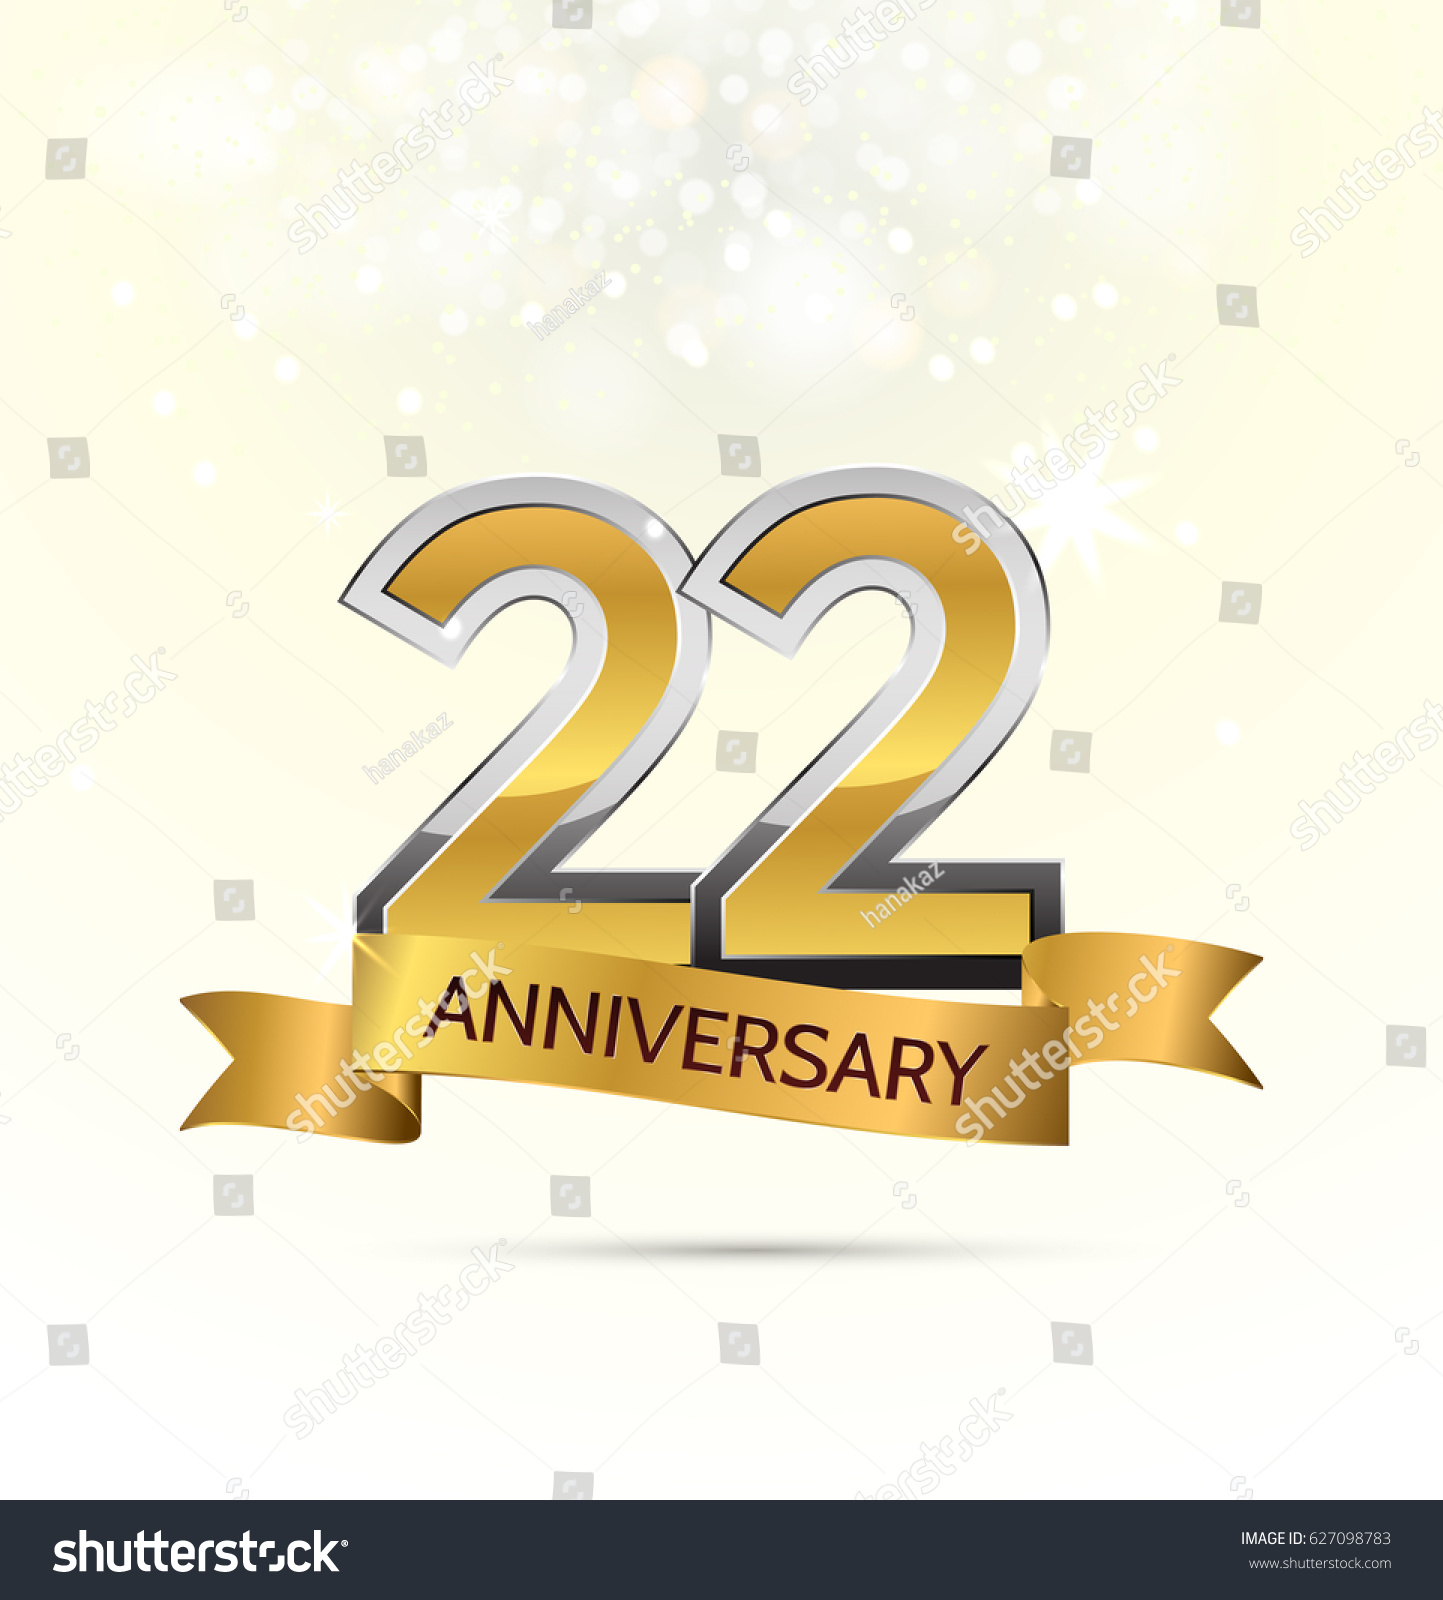 22 years anniversary celebration abstract background stock vector